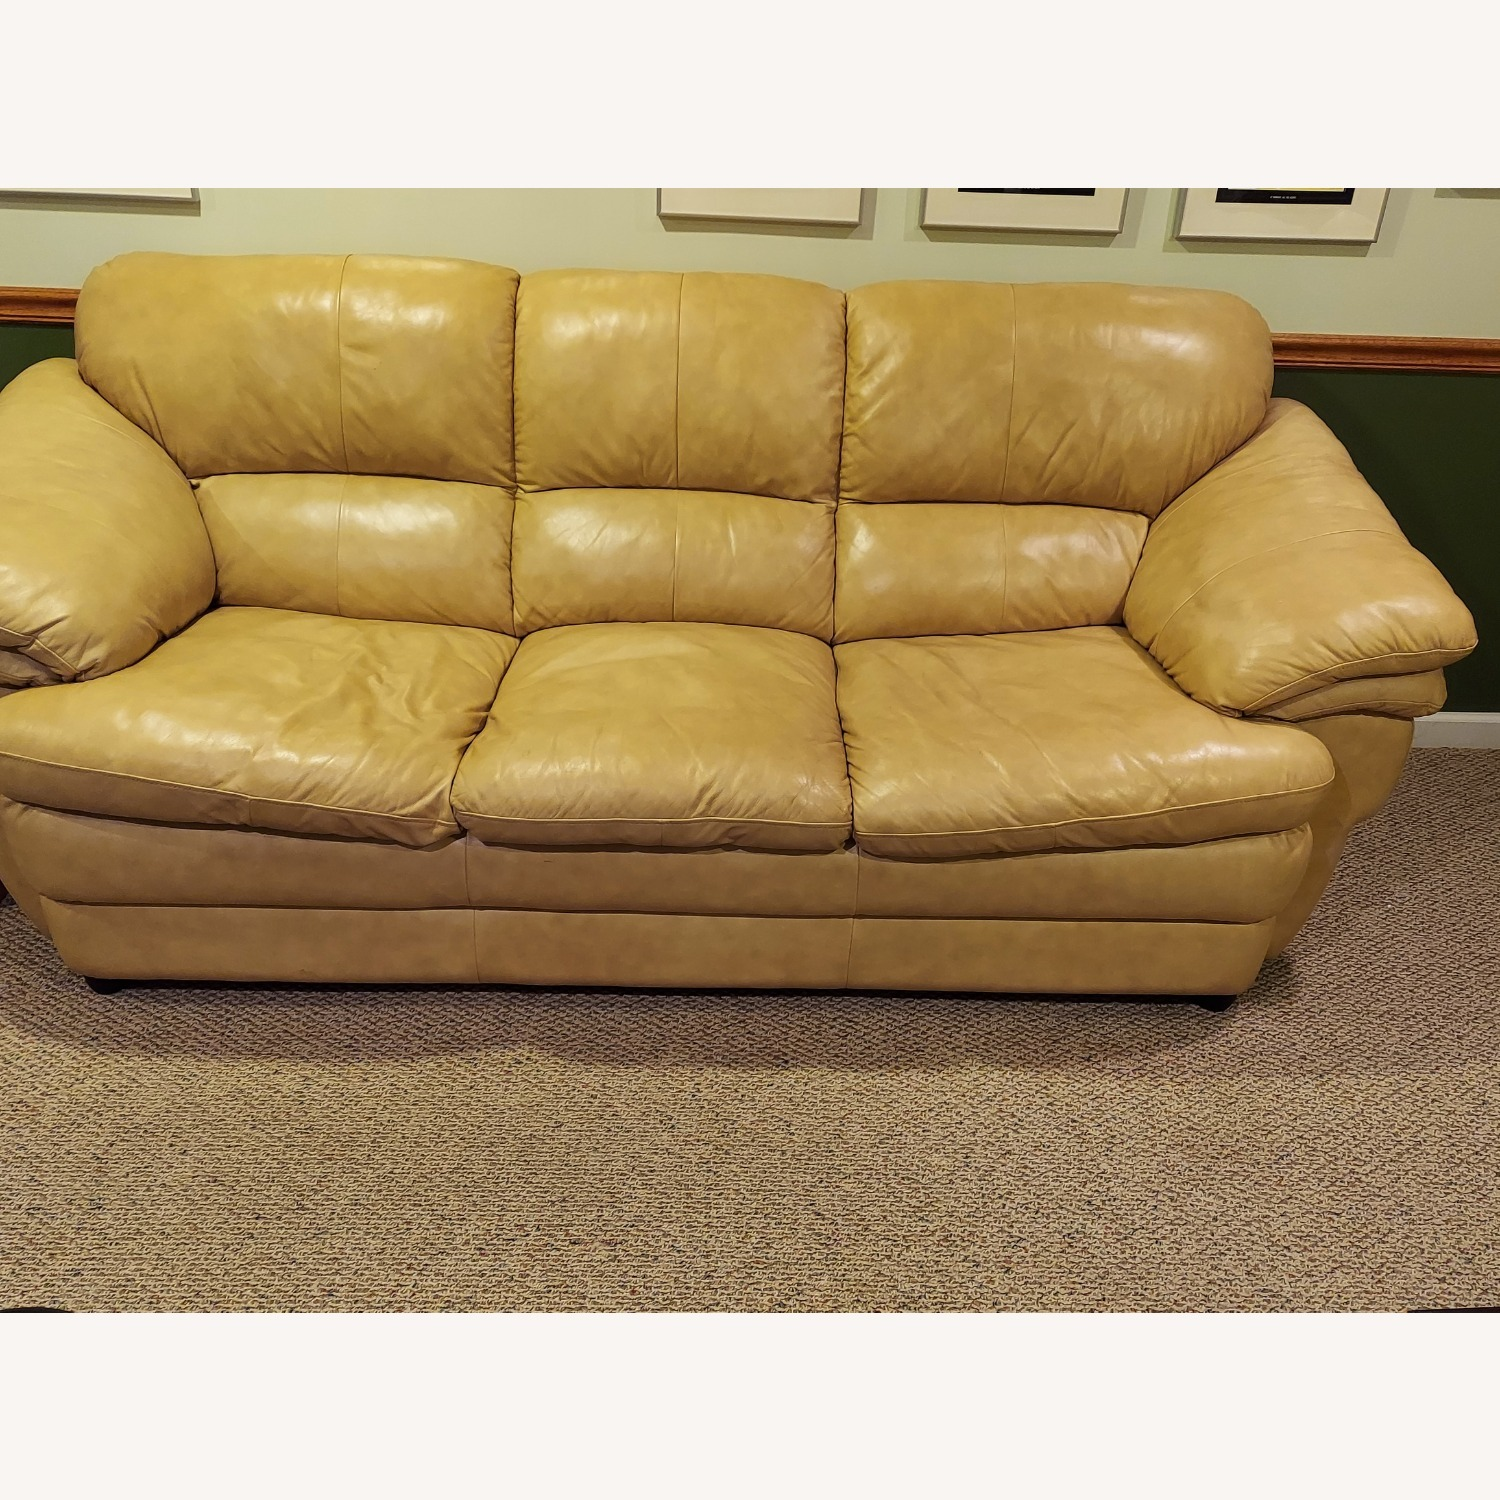 Bob's Discount Natural Bonded Leather 3 Seater Sofa - image-1